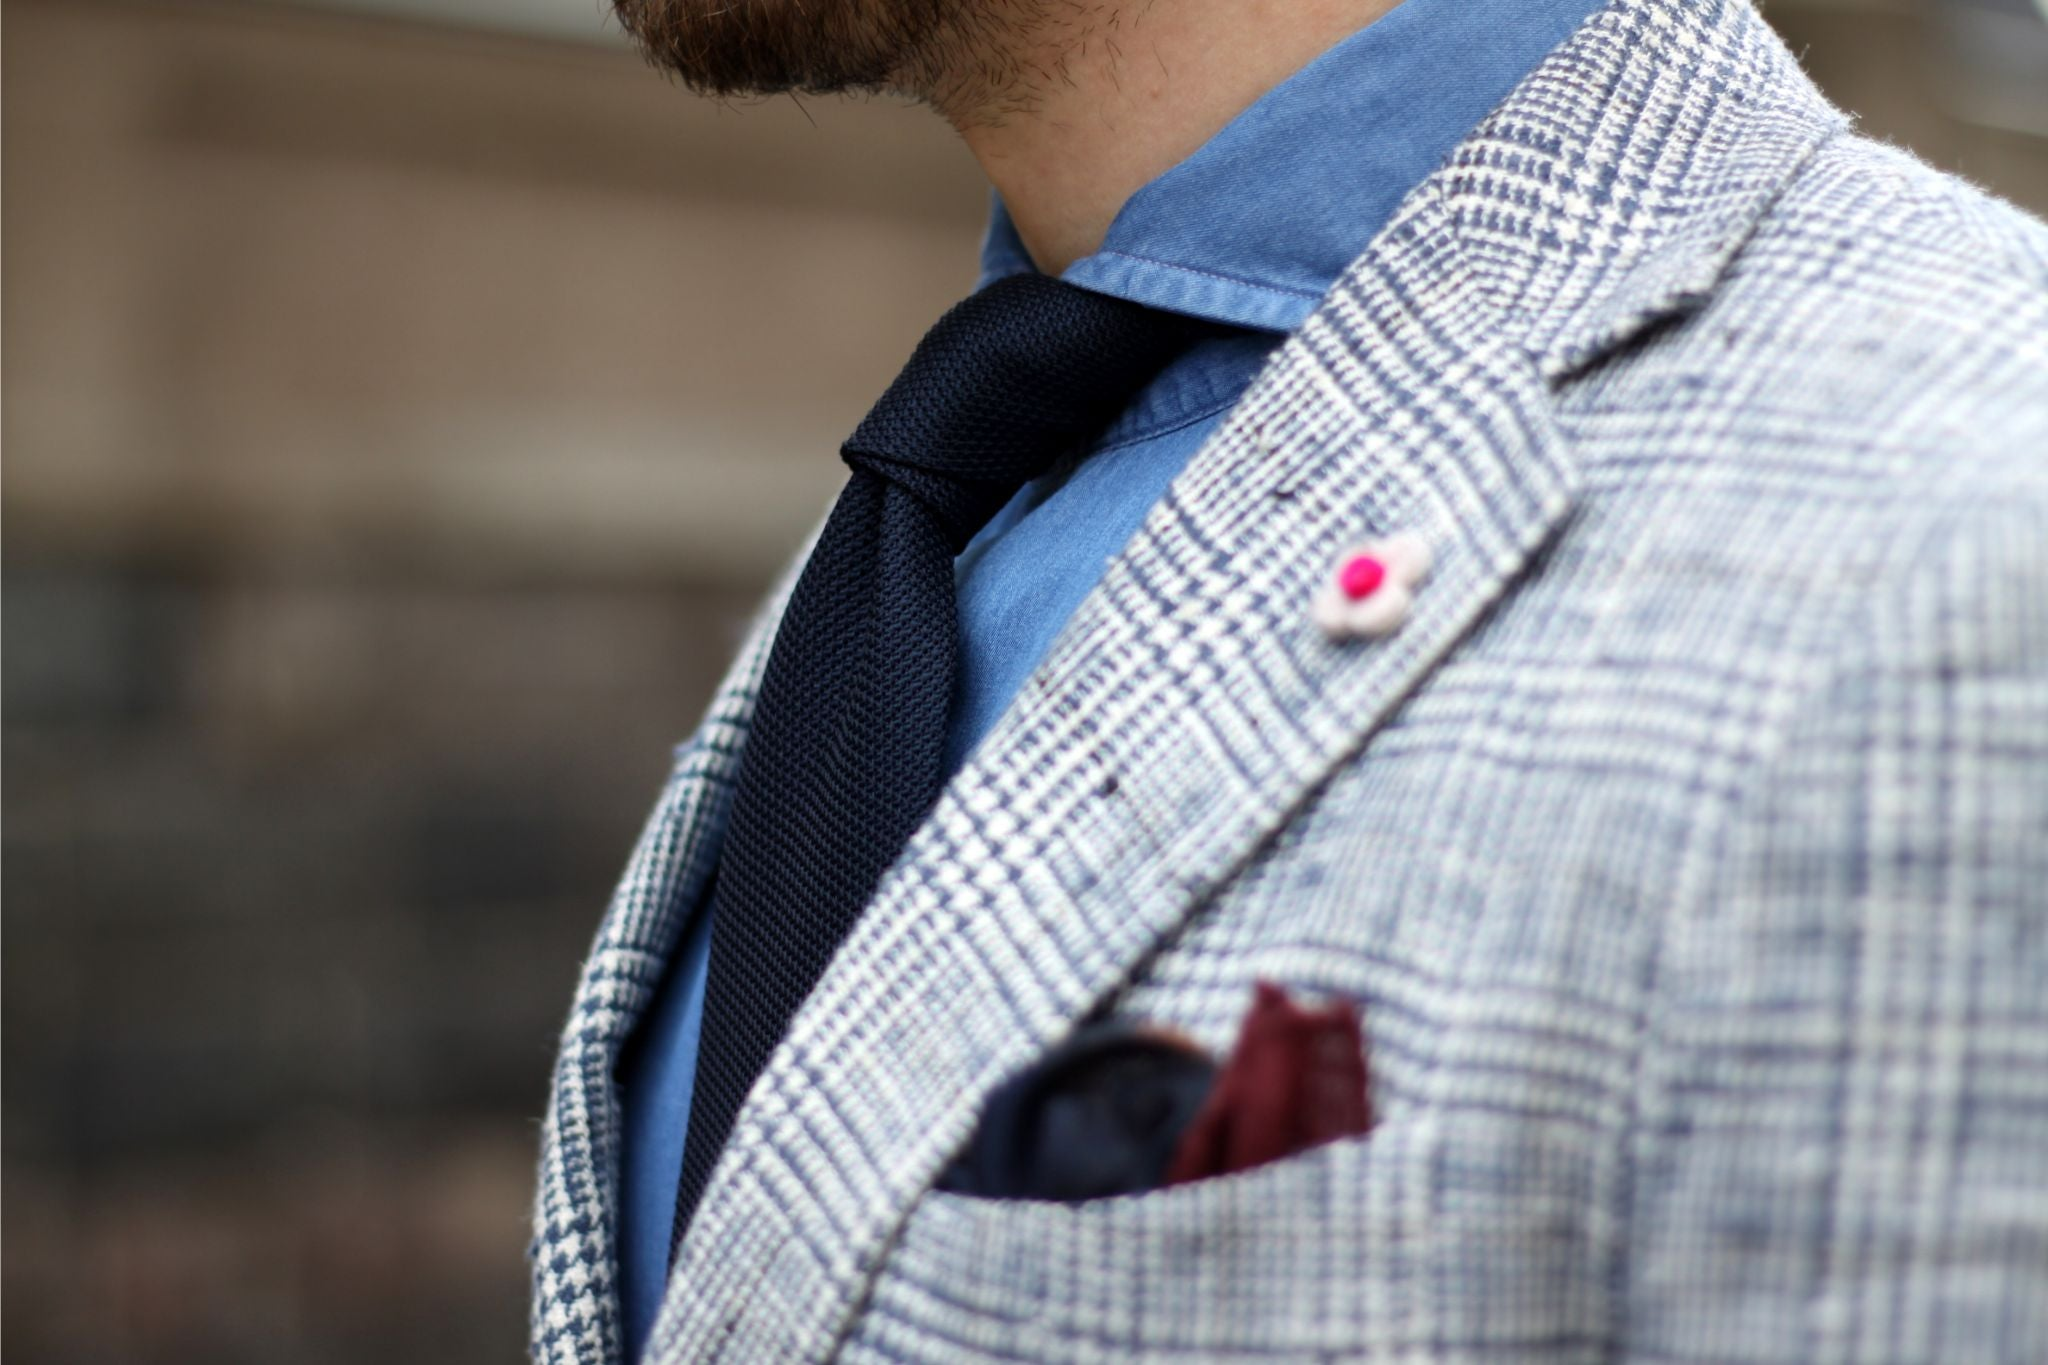 Checked sport coat details - dark blue tie with denim shirt and checked jacket